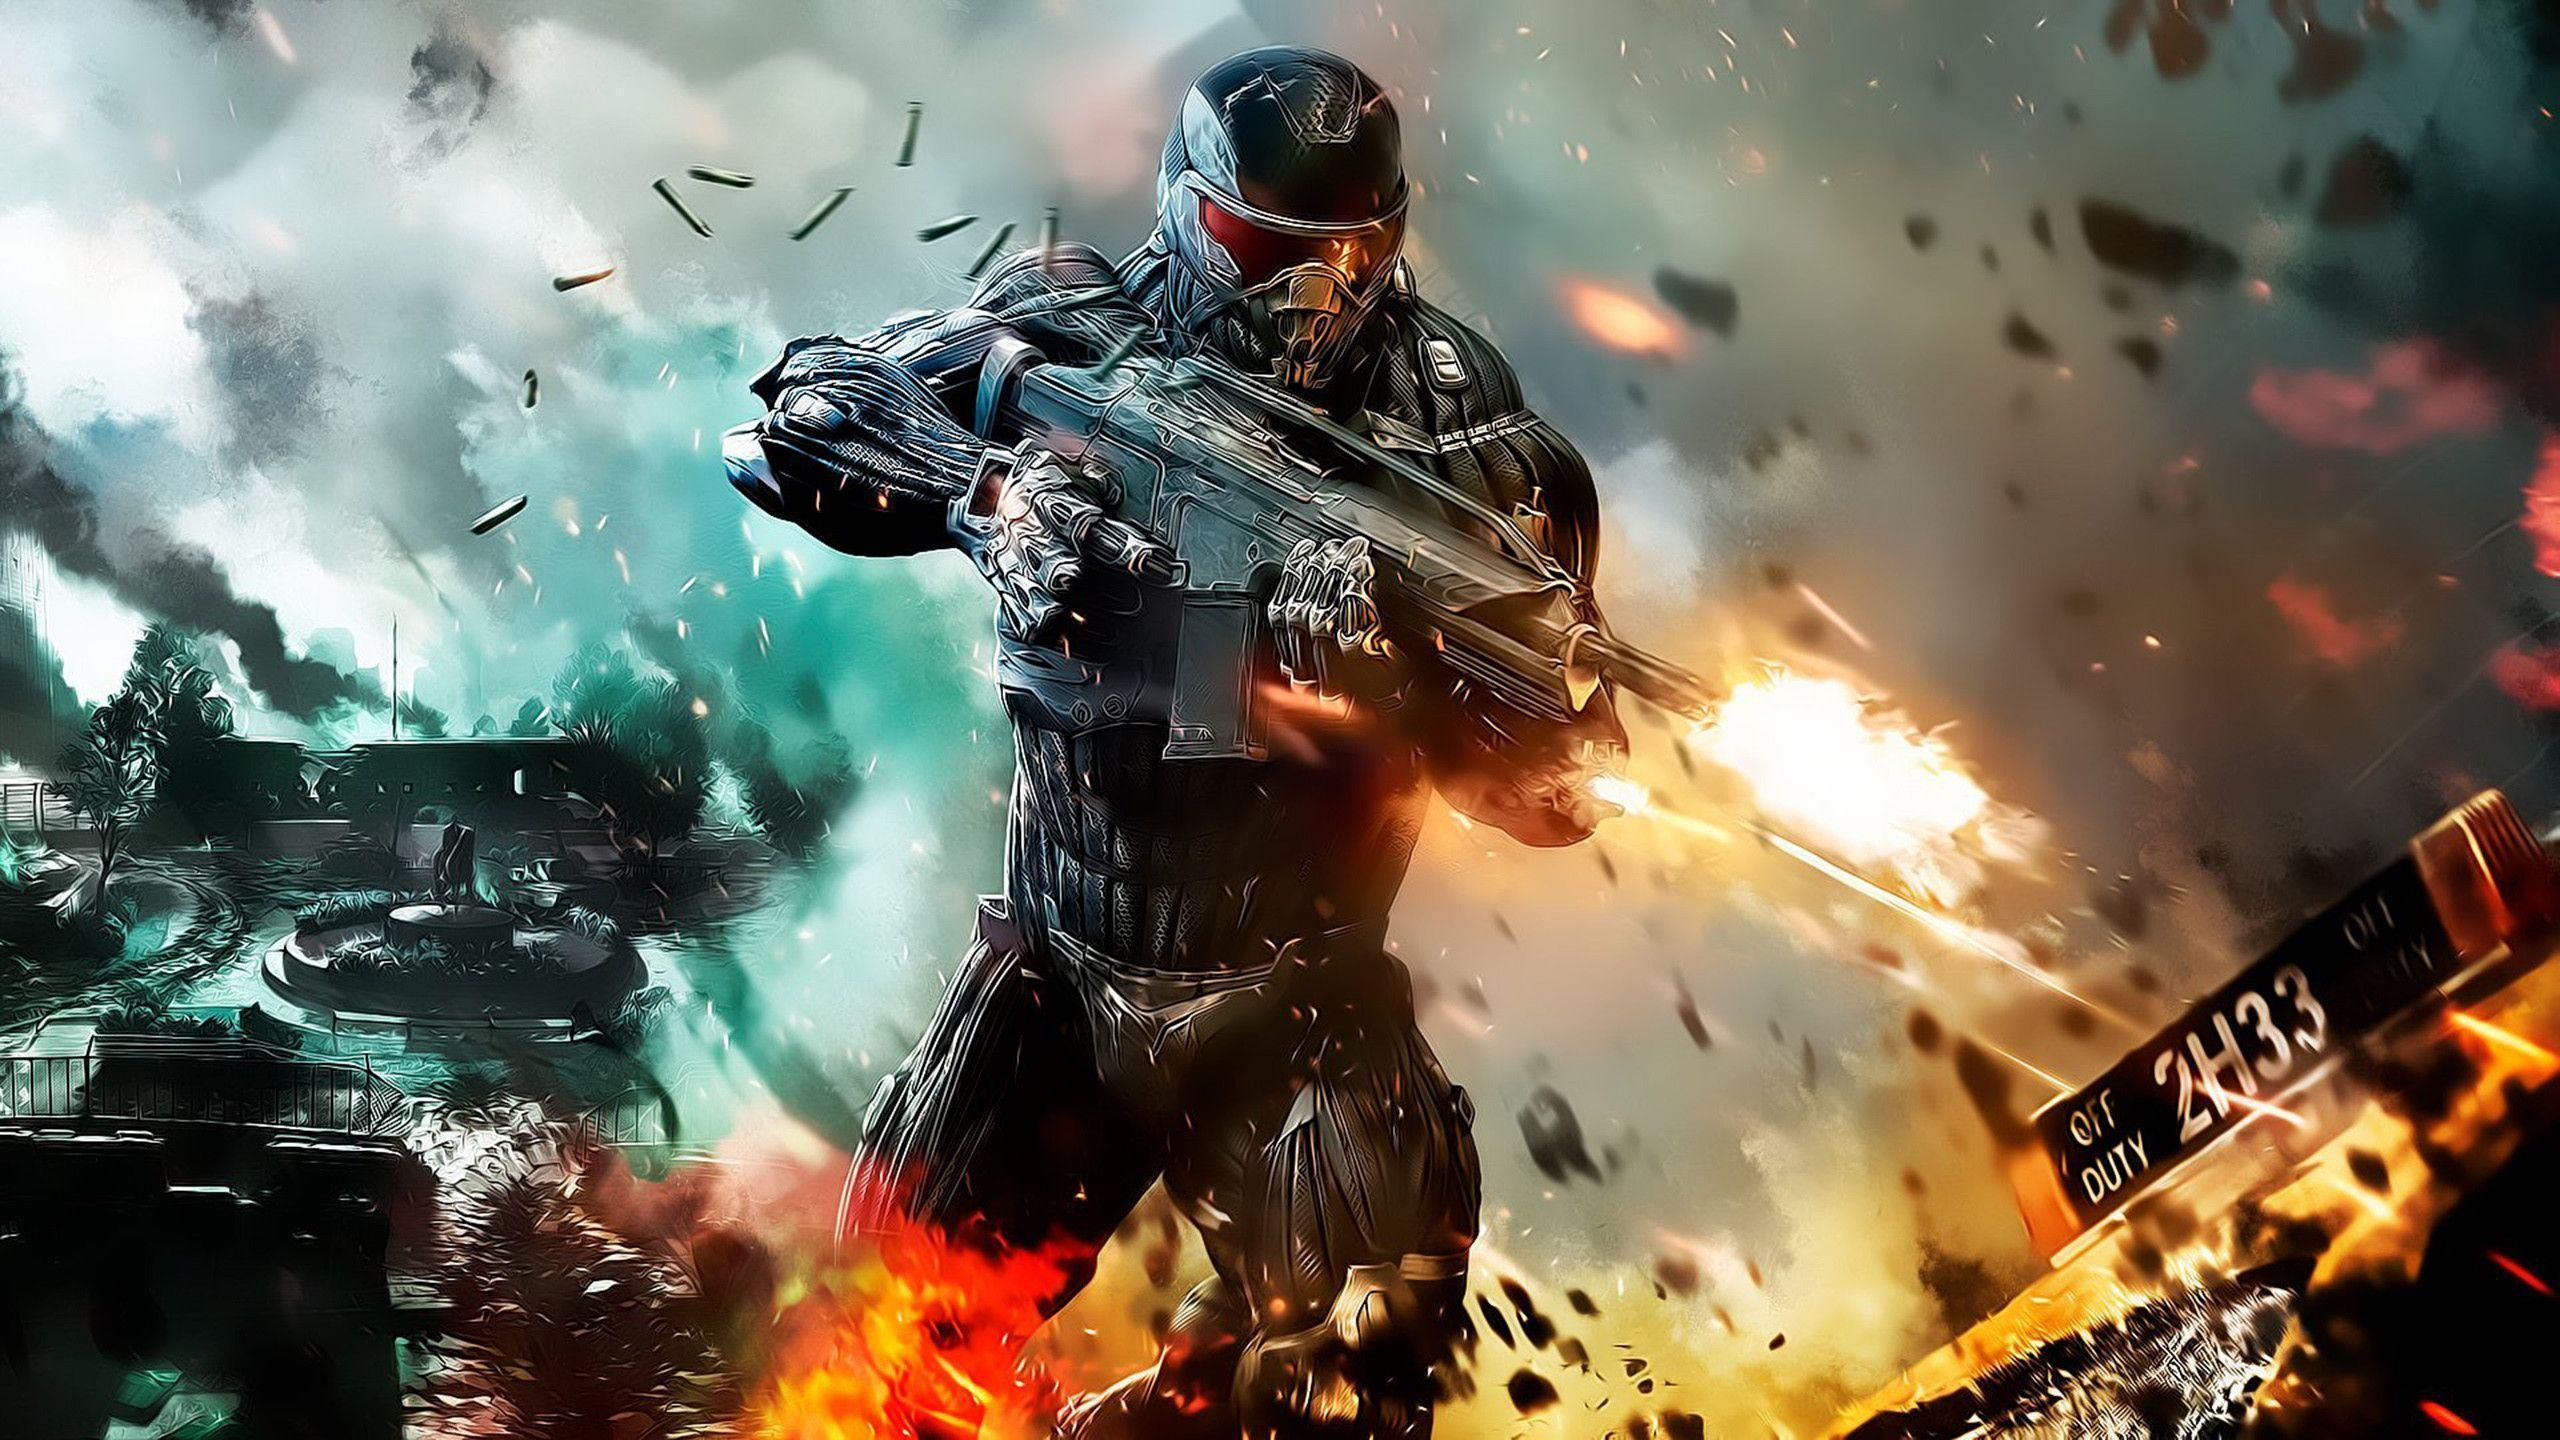 crysis 4 wallpaper hd-#37